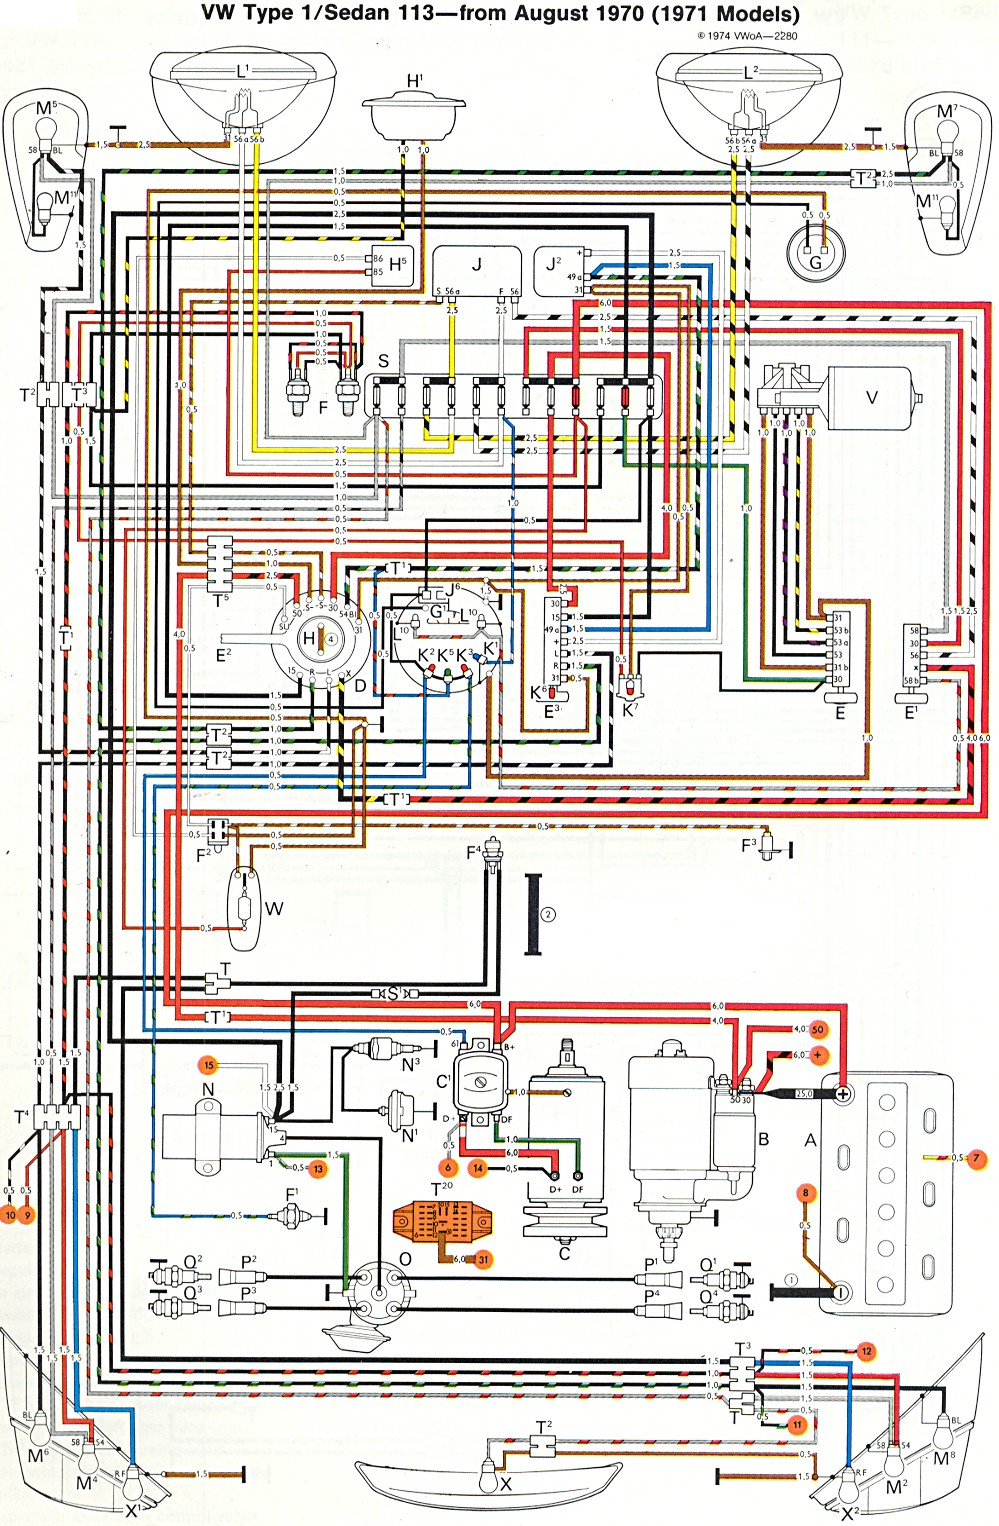 hight resolution of 1971 vw bug fuse diagram wiring diagram todays old fuse diagram 1970 vw beetle wiring harness